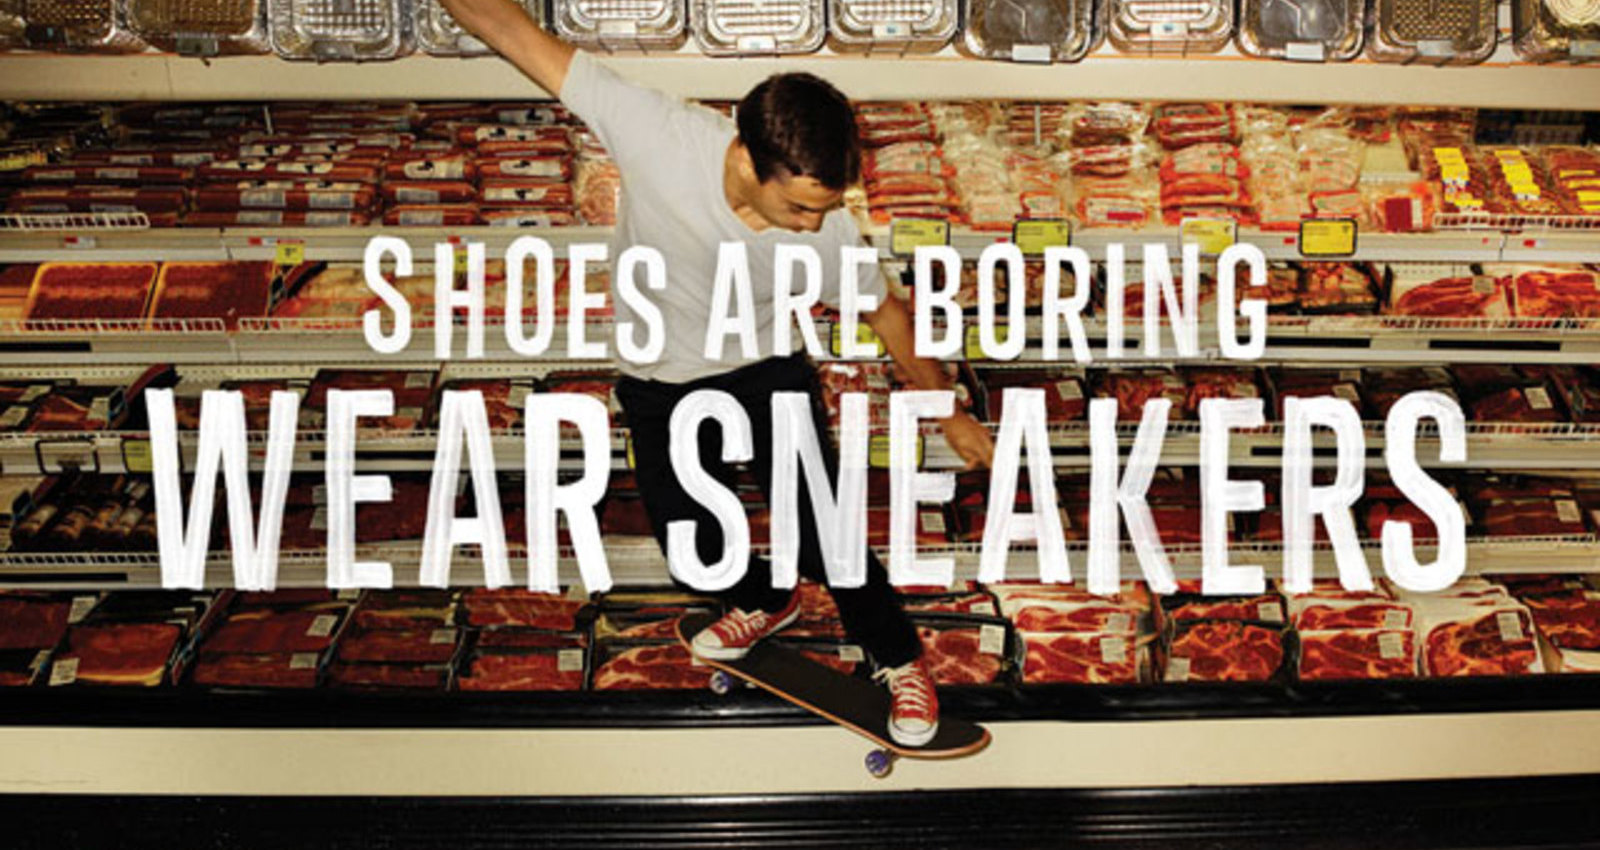 Shoes are Boring, Wear Sneakers